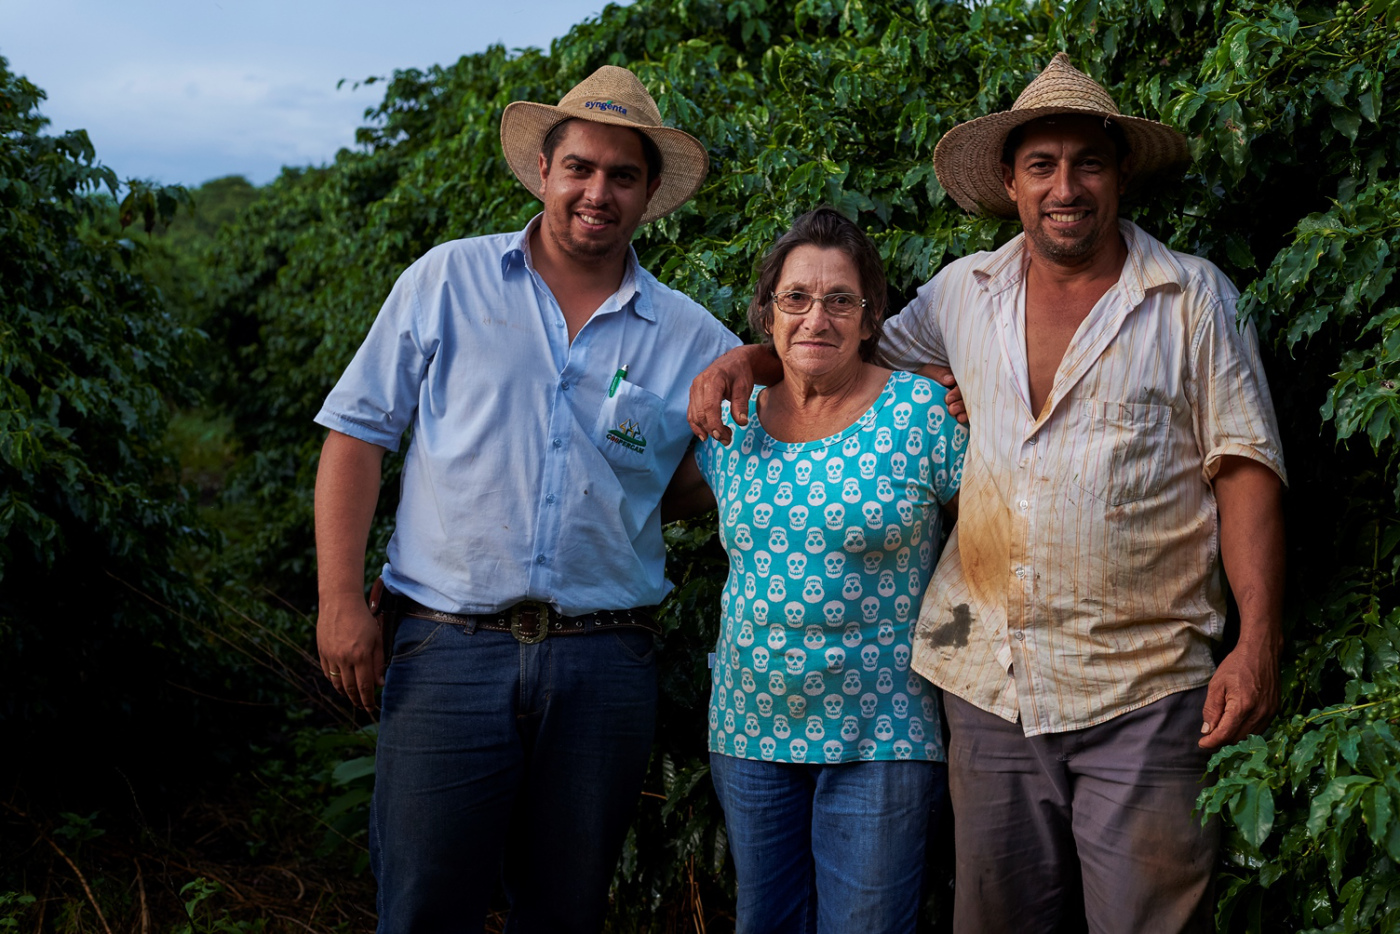 """As head of family, I have to look at good profitability to make sure we have enough in the future. Only though good management this is possible. Coffee has always been our traditional cash crop and quality increase is definitely one of the objectives, so we need to make more with less. Maintaining natural resources such as our set aside land and water sources is also vital to our living. UTZ gives us good management tools, and with the support of Caminho Sustentia, we believe enough growth is supported to our professionalization. With the structure of UTZ program, it is clear where improvements are needed. This capacity, specially for smallholder farming is key."""